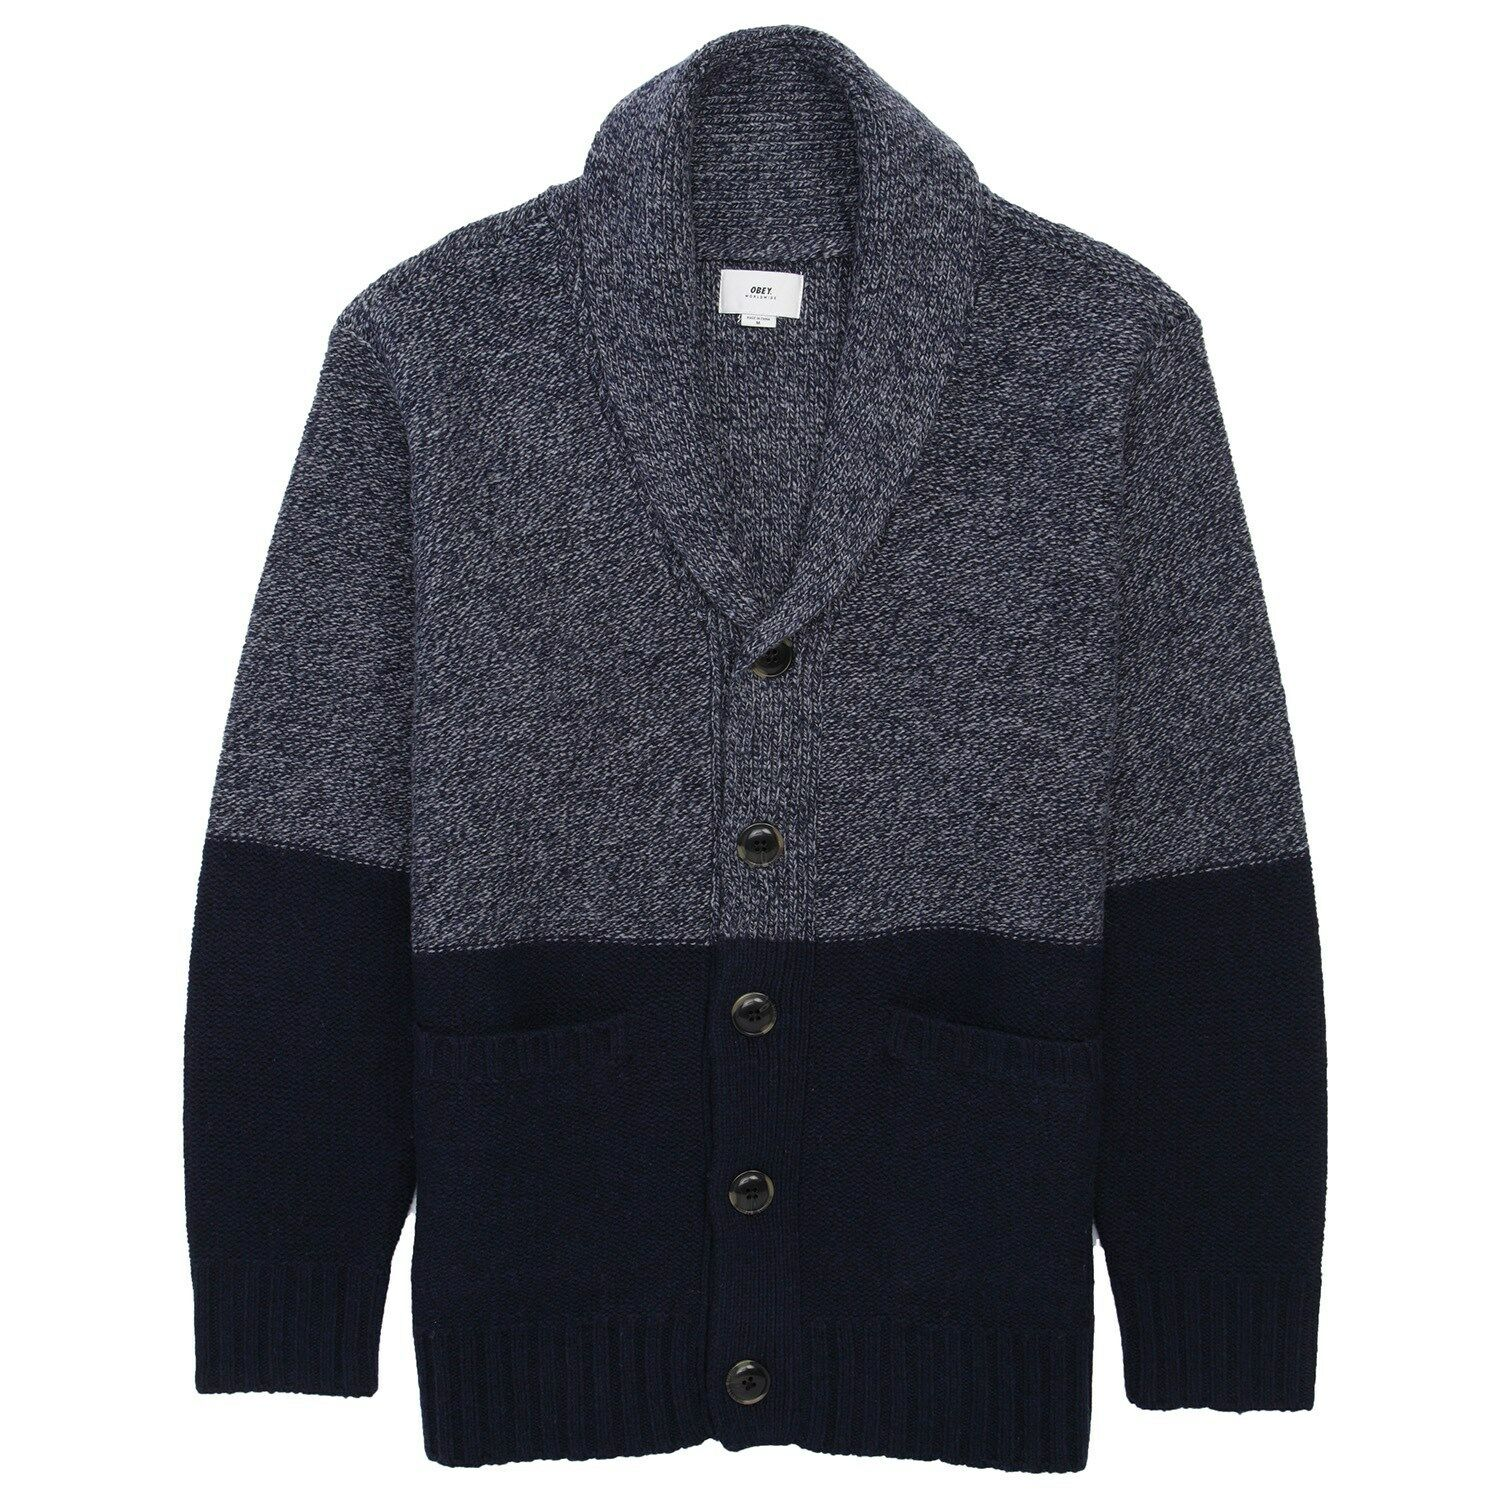 OBEY HOLDEN CARDIGAN SWEATER NAVY blueE SZ S-3XL  MSRP NWT